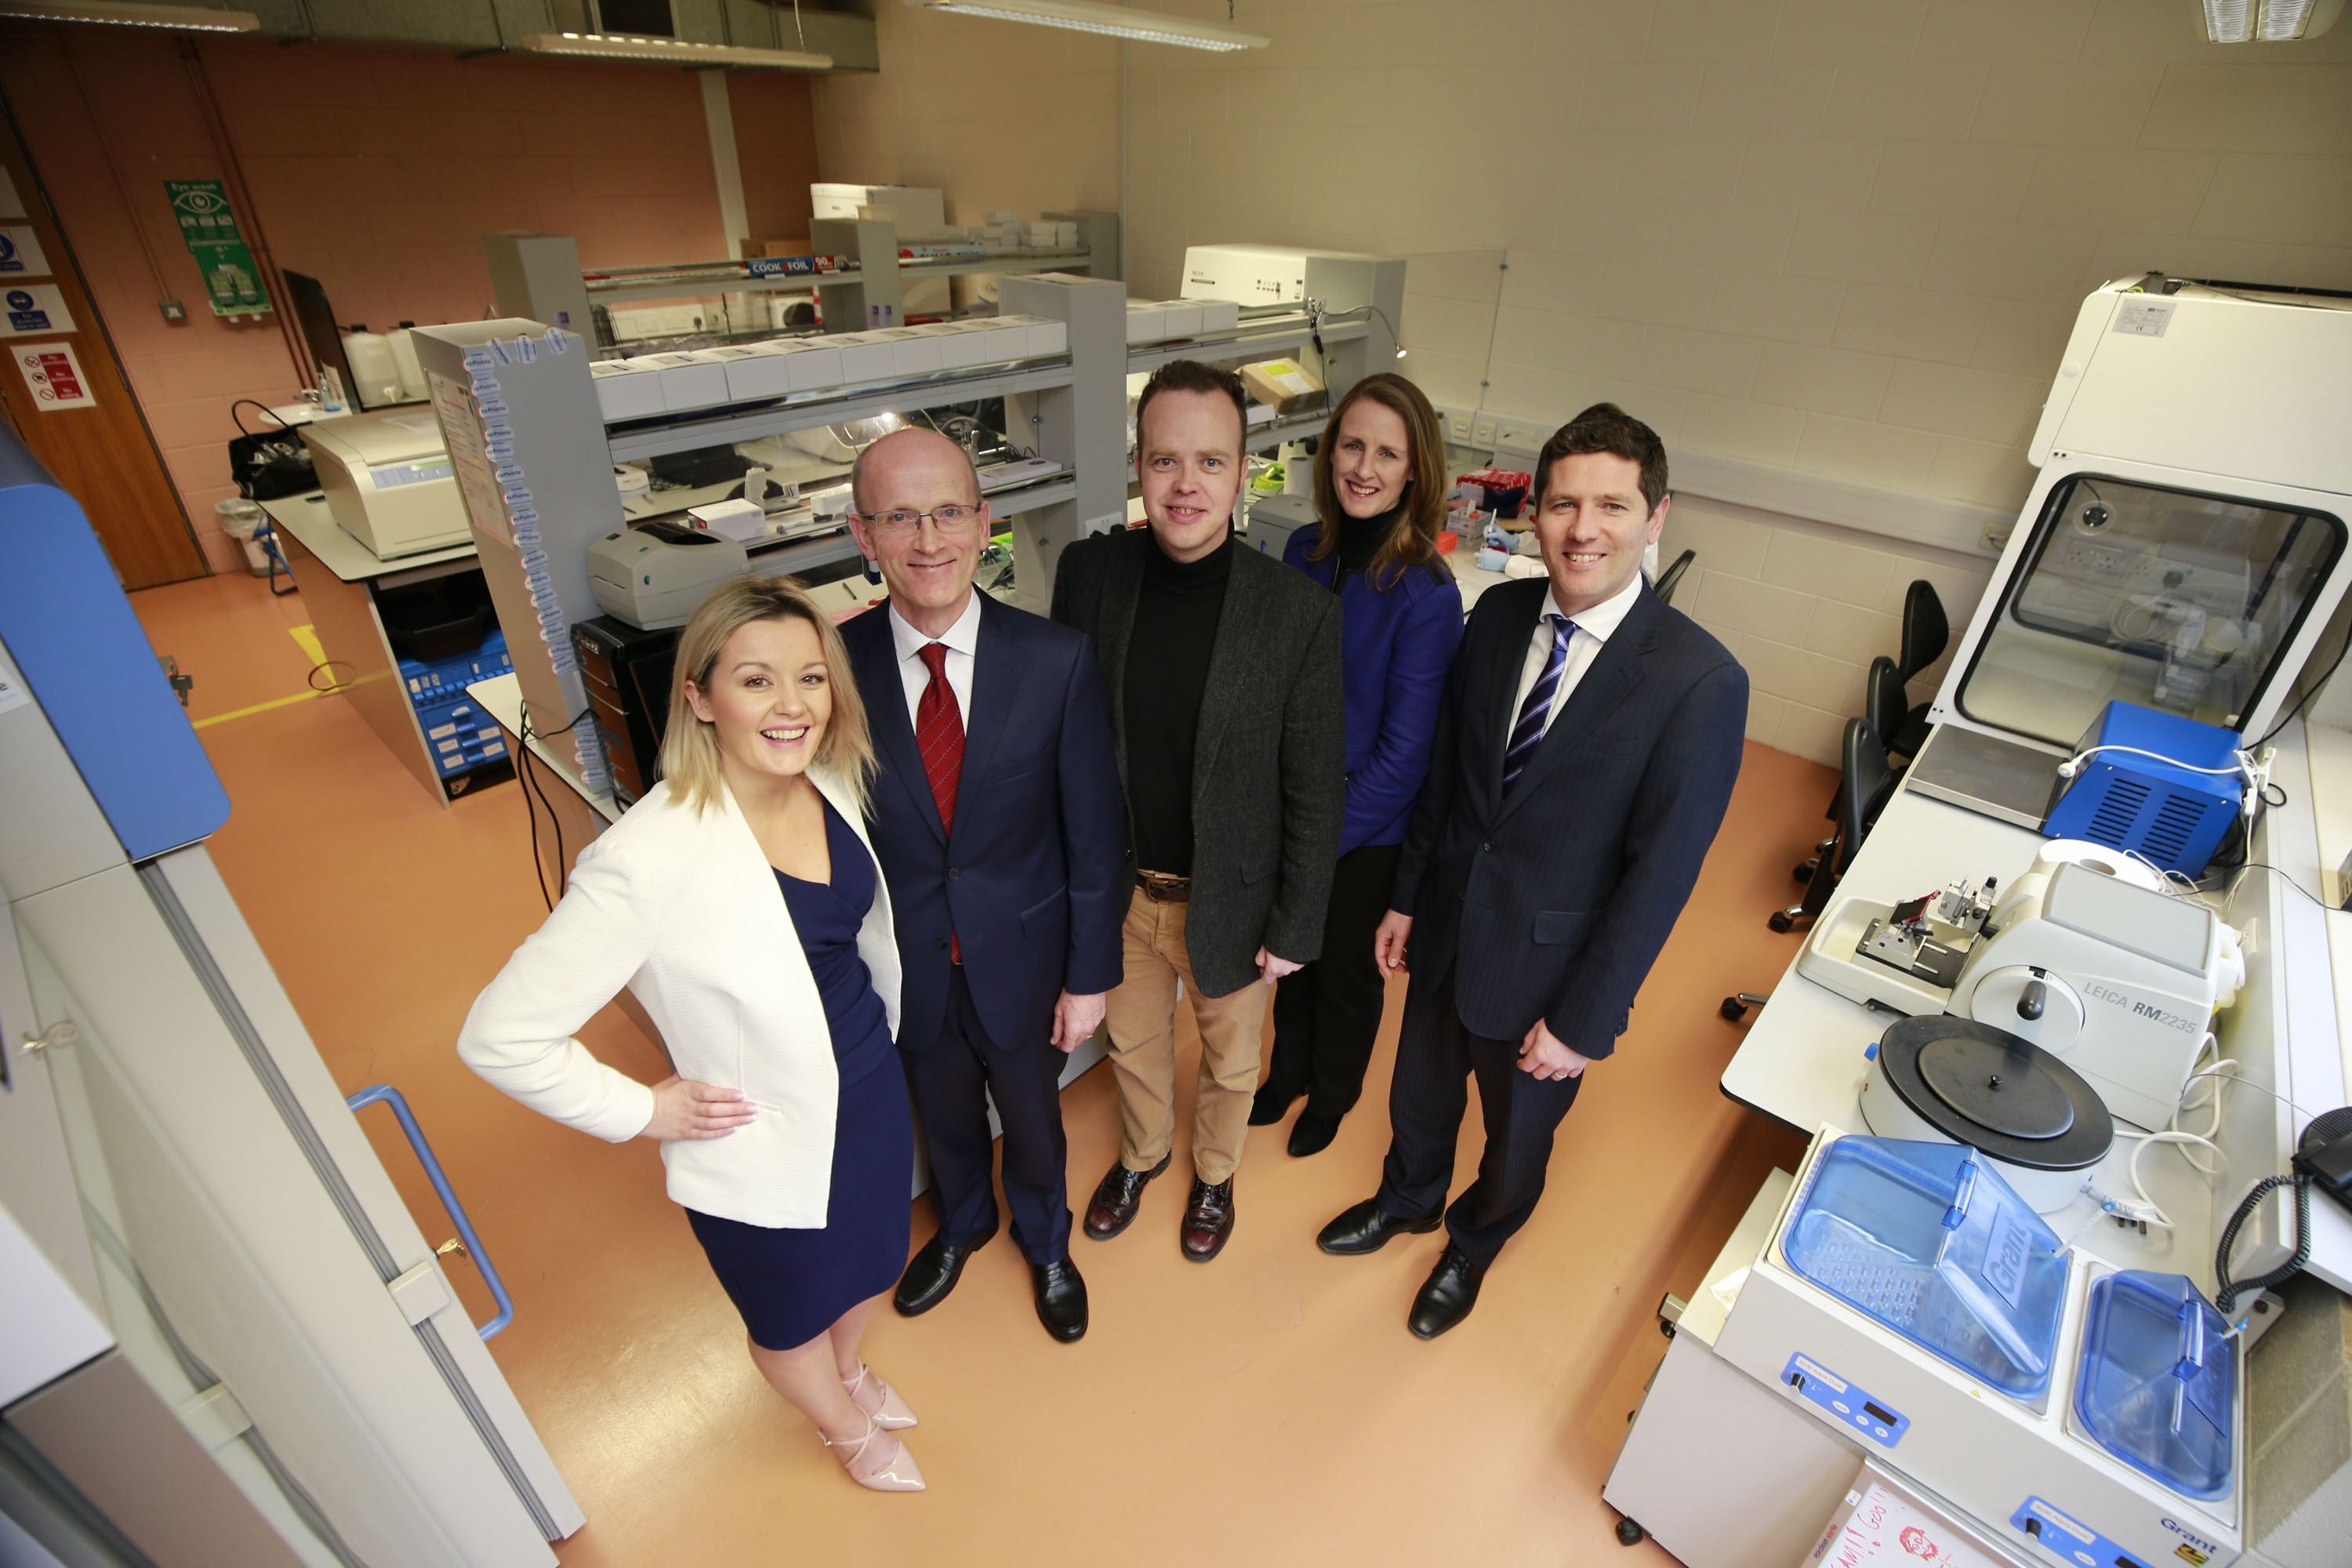 Pictured were Dawn Walsh, Kernel Capital; Des O'Leary, CEO, OncoMark; Professor William Gallagher, Director, UCD Conway Institute and co-founder, OncoMark; Deirdre Glenn, Manager, Lifesciences Sector, Enterprise Ireland and Kevin Healy, Senior Manager, Corporate Banking Ireland, Bank of Ireland